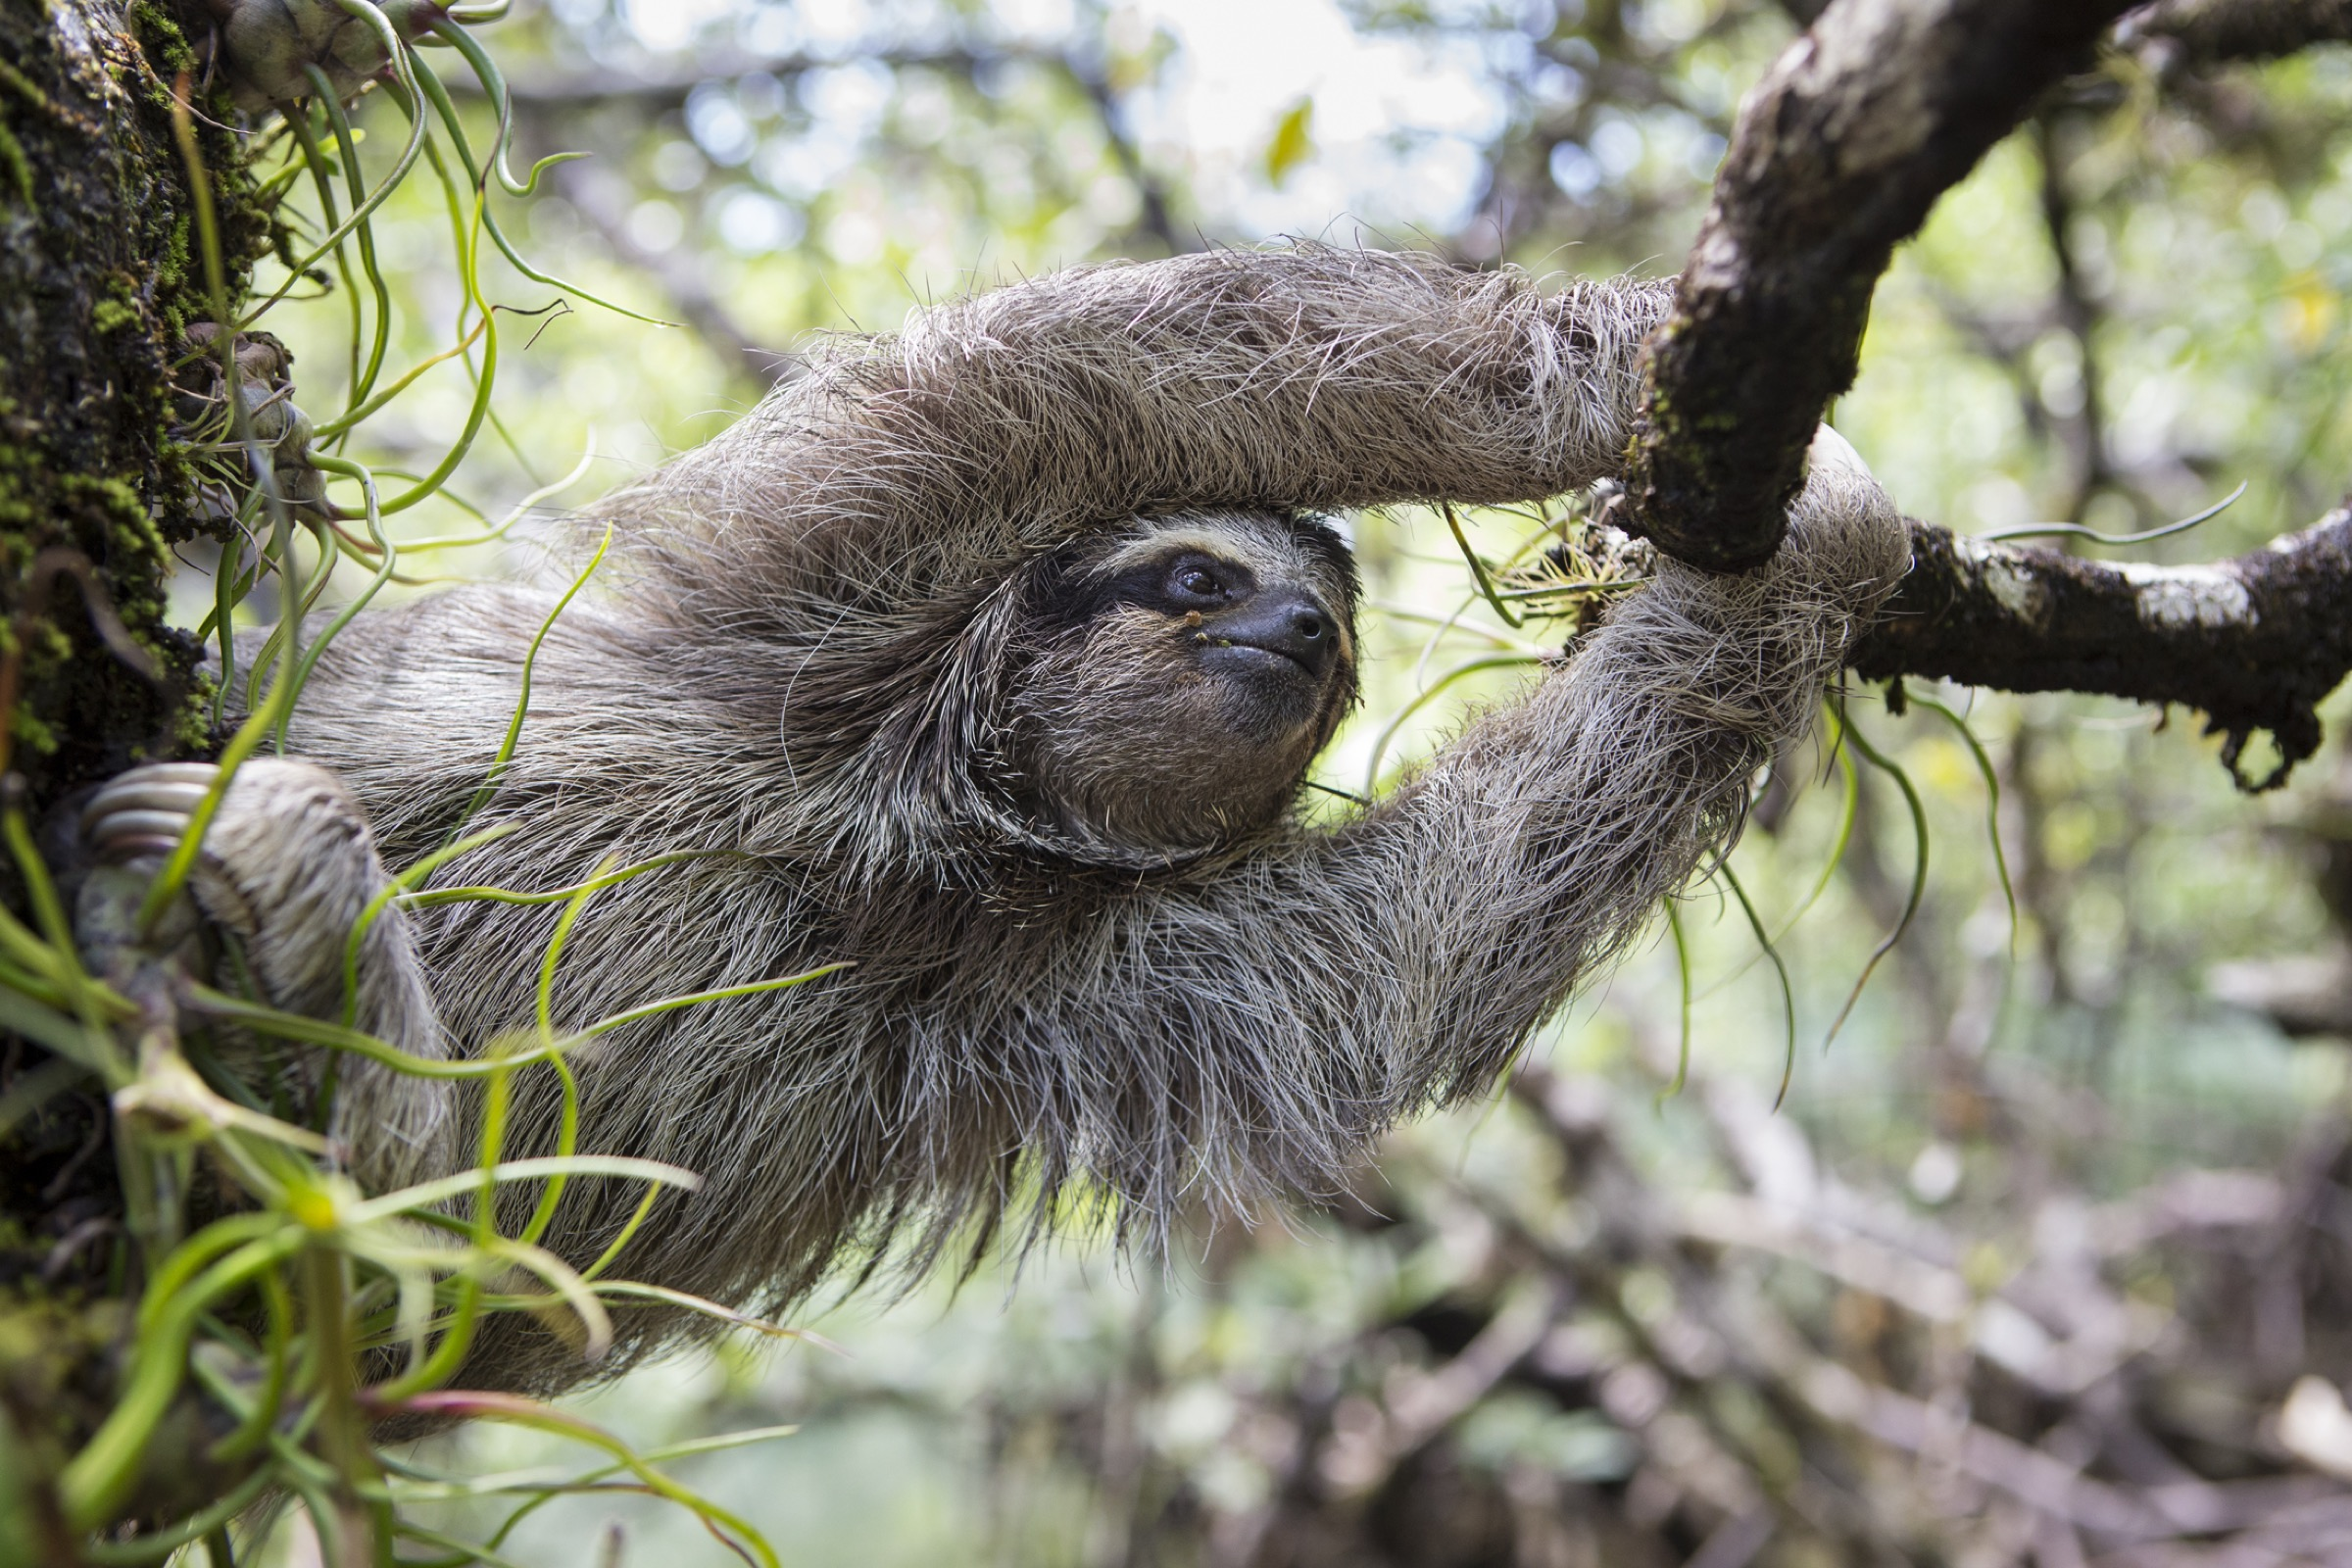 Pygmy three-toed sloths are particularly vulnerable on the ground, so they prefer to travel by water or through the trees.